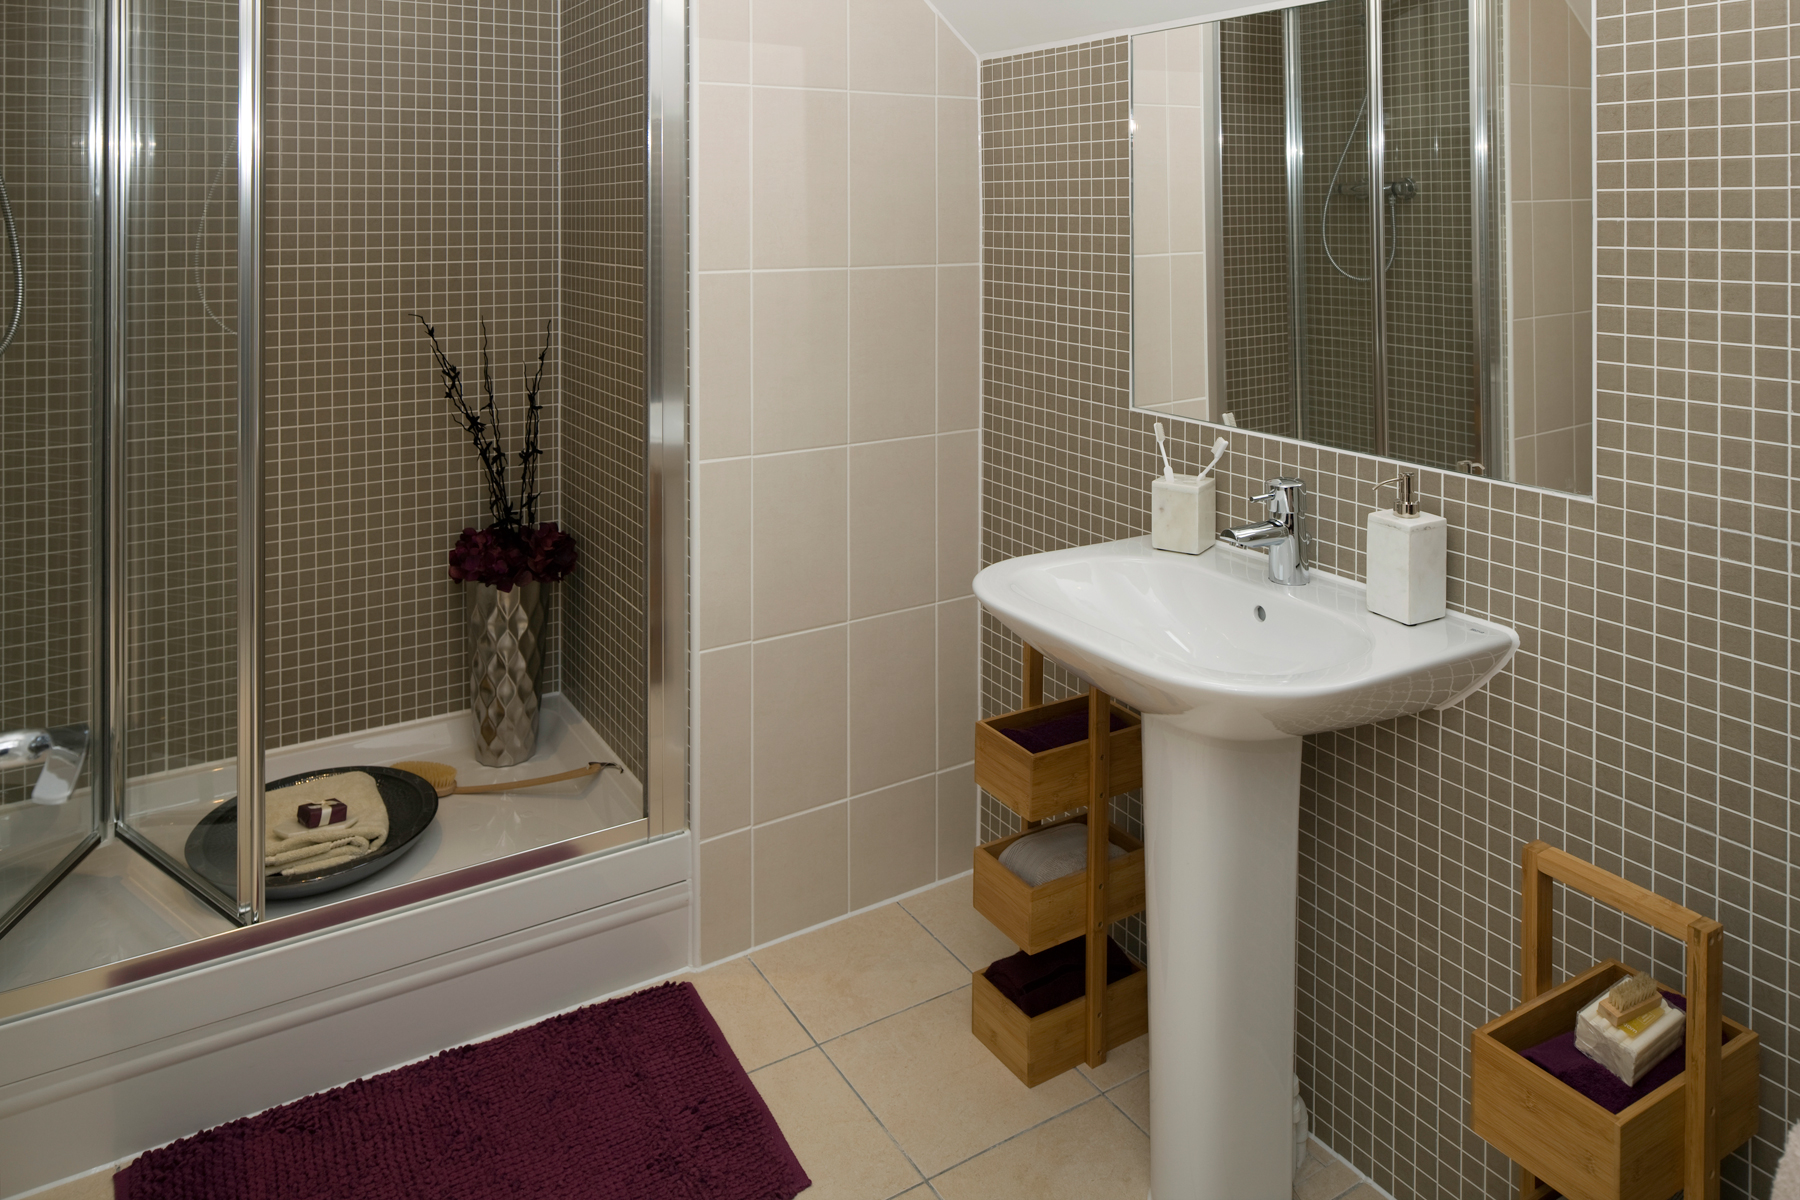 Leybourne chase new homes in kent taylor wimpey for Show home bathrooms